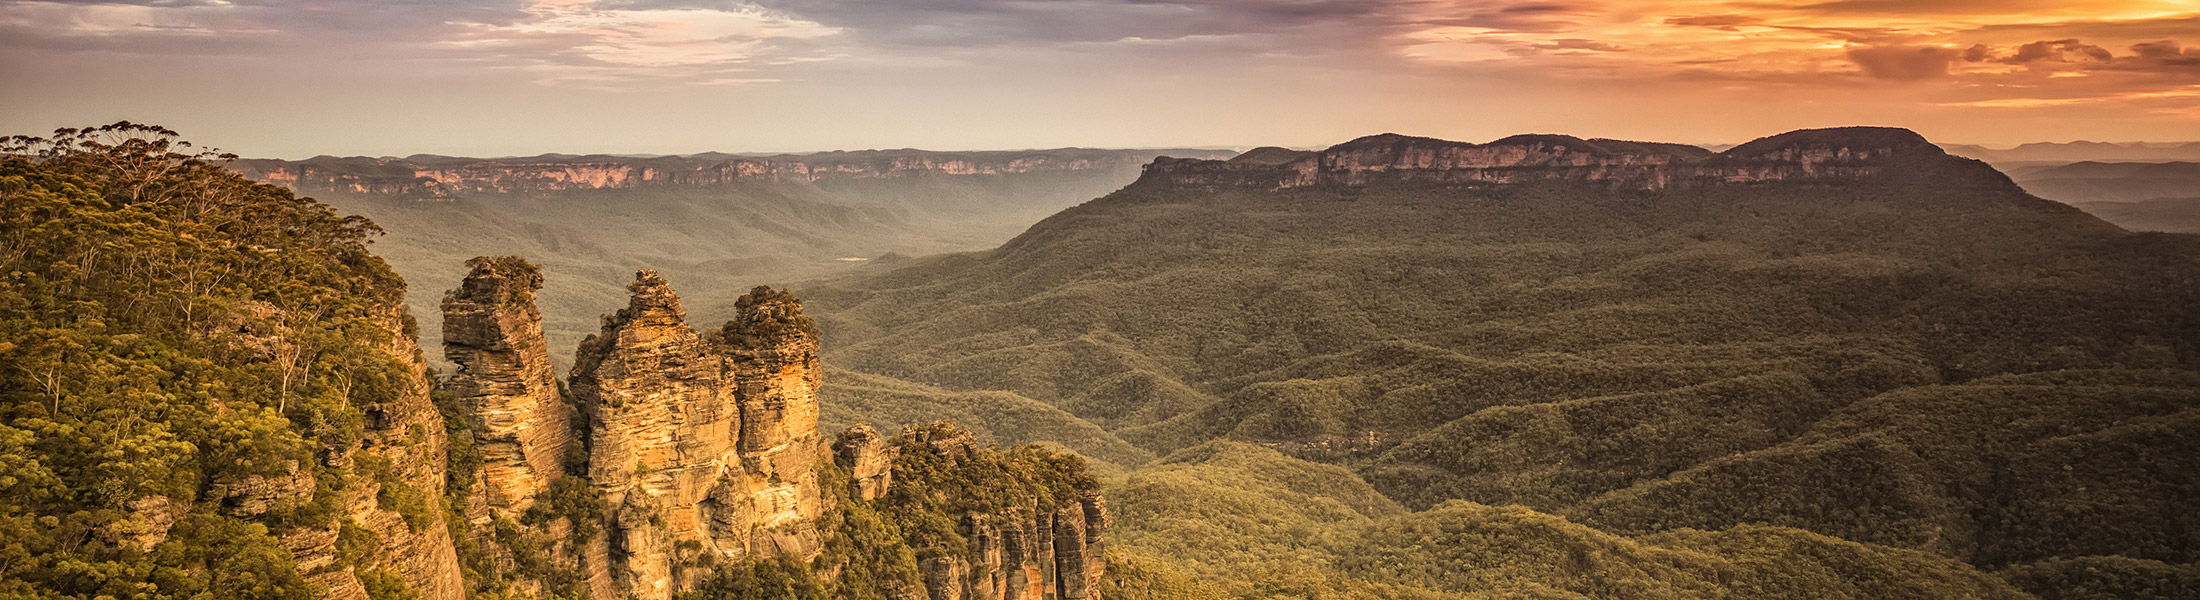 Sunset at the Three Sisters in the Blue Mountains in Australia